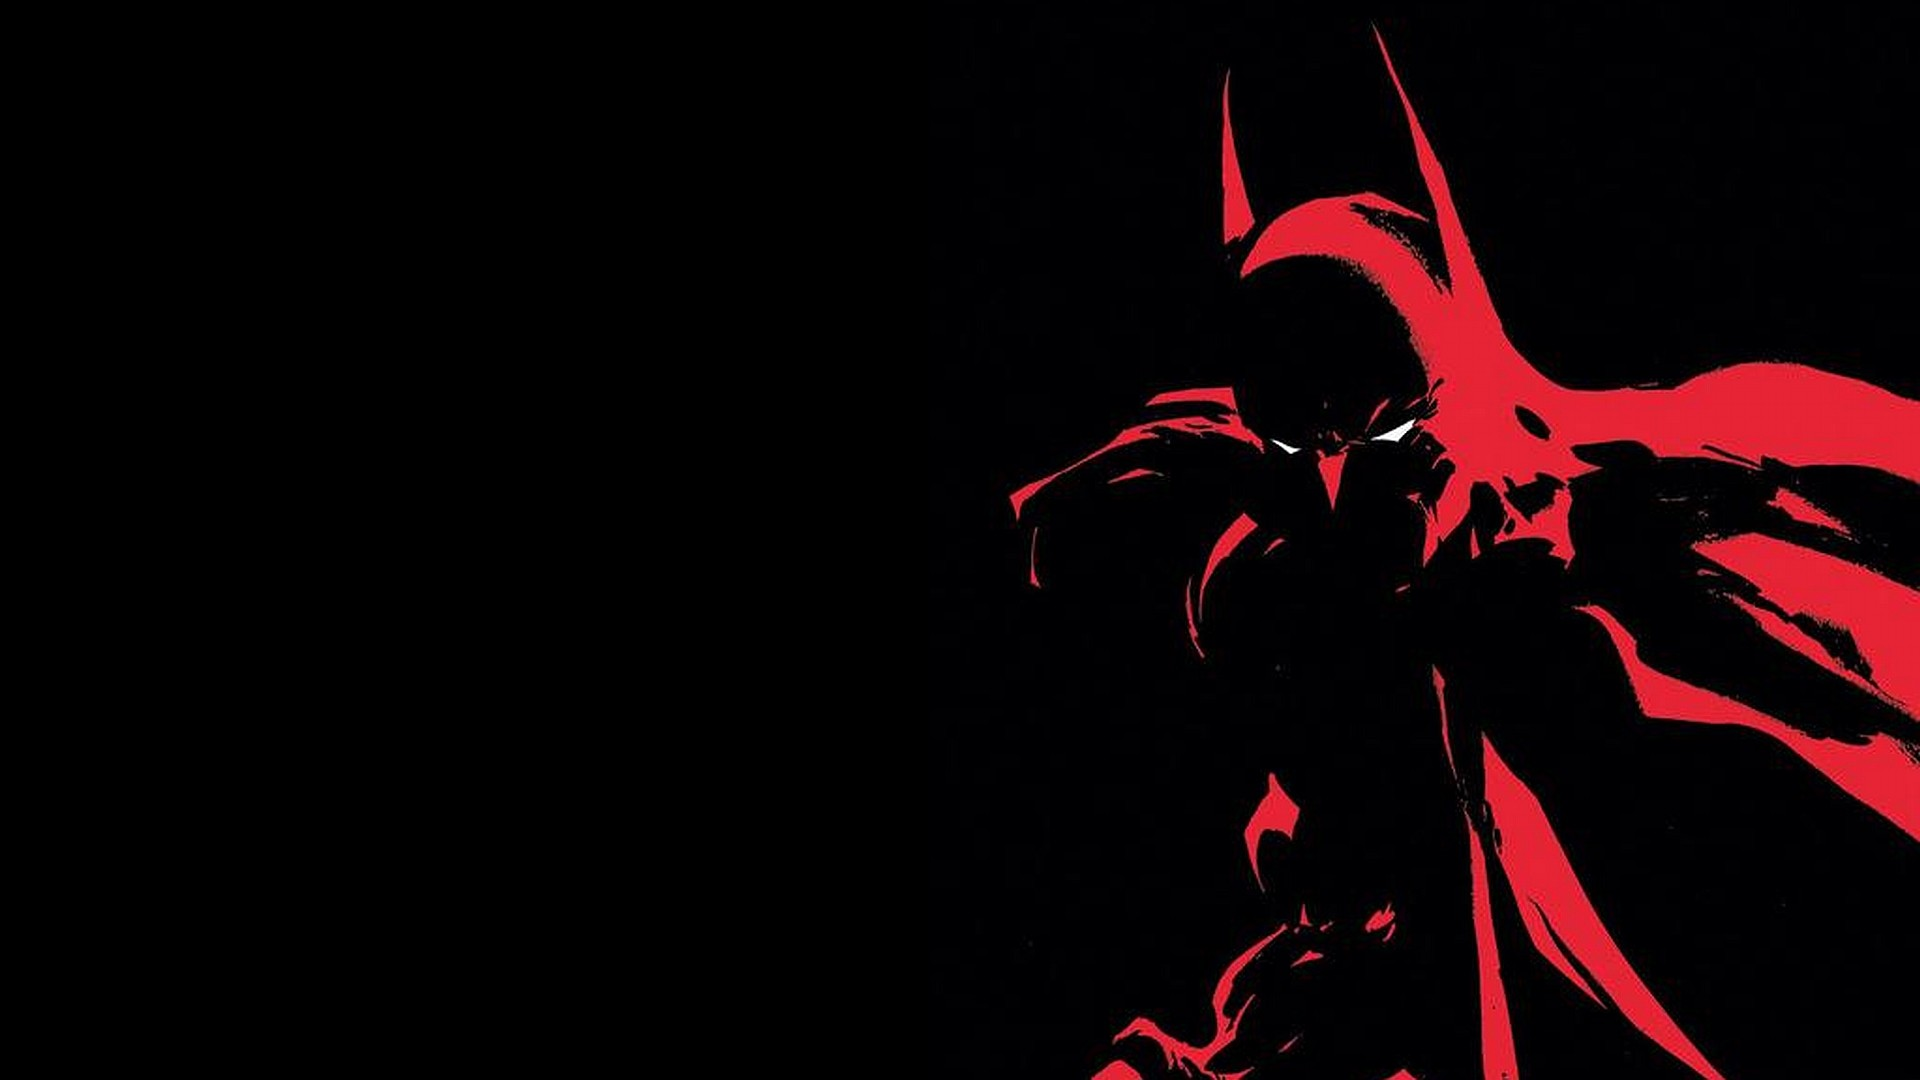 Batman Comics Wallpaper - WallpaperSafari